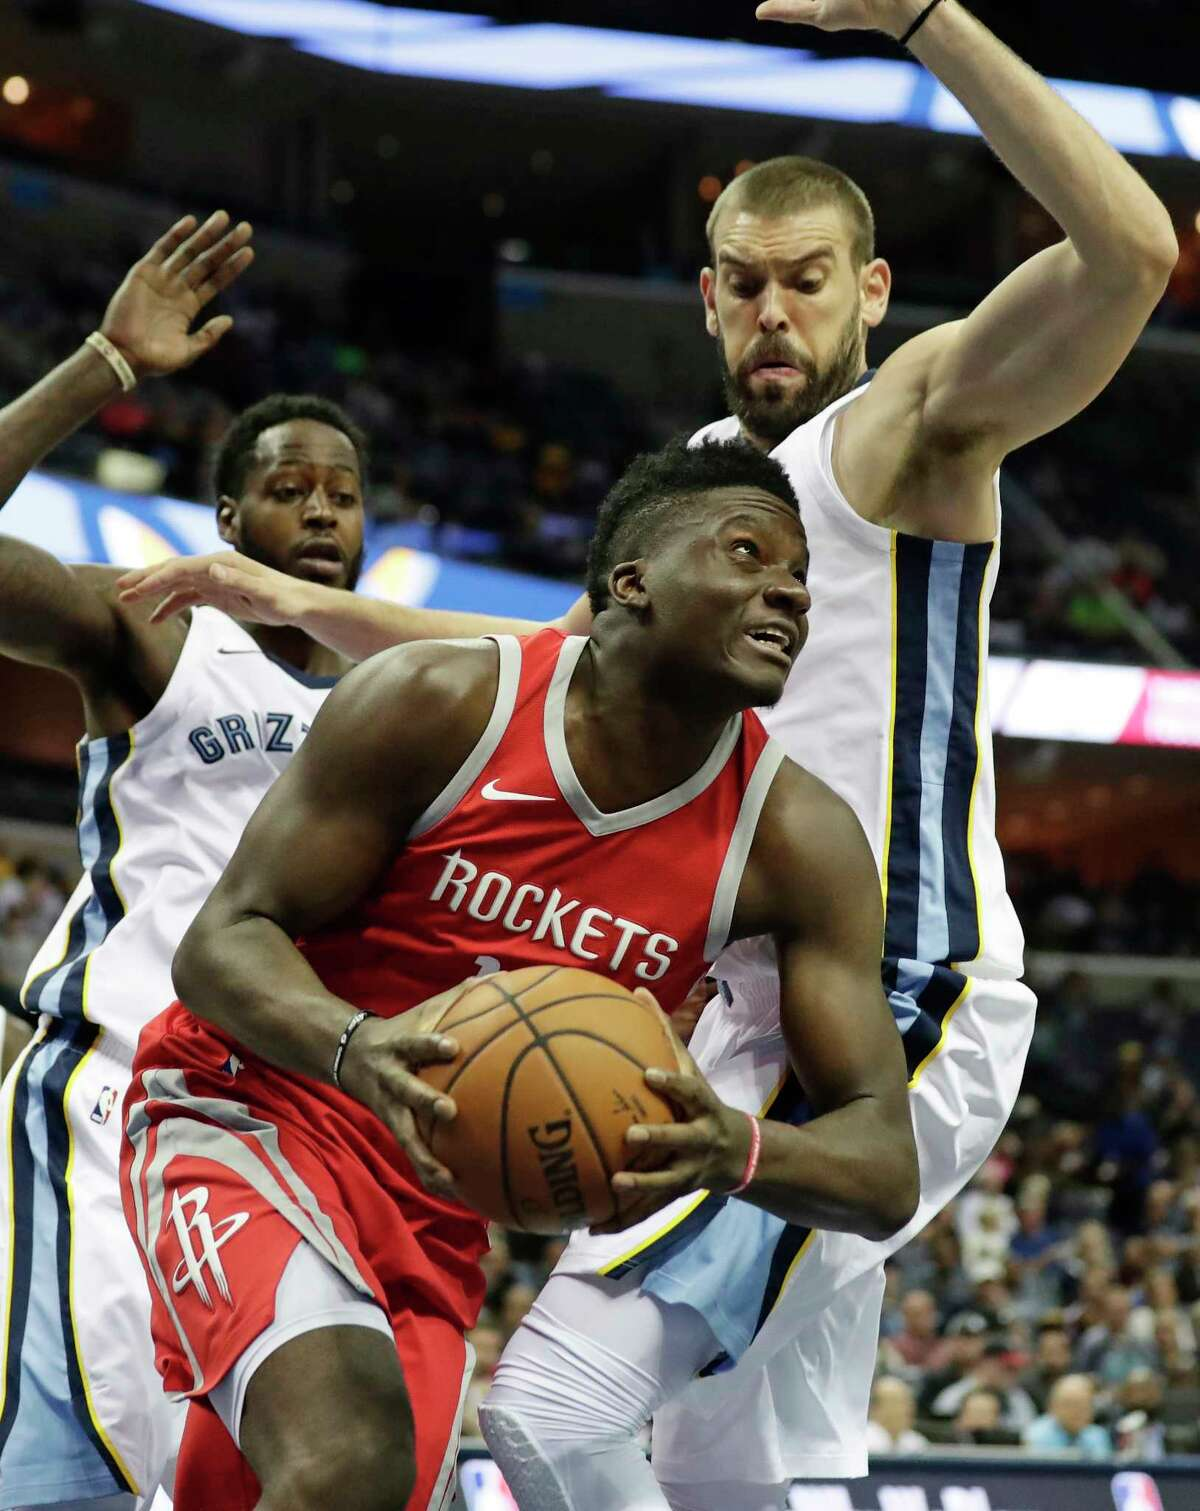 Houston Rockets center Clint Capela (15) tries to find an opening against Memphis Grizzlies center Marc Gasol (33) in the first half of an NBA preseason basketball game on Wednesday, Oct. 11, 2017, in Memphis, Tenn. (AP Photo/Rogelio V. Solis)